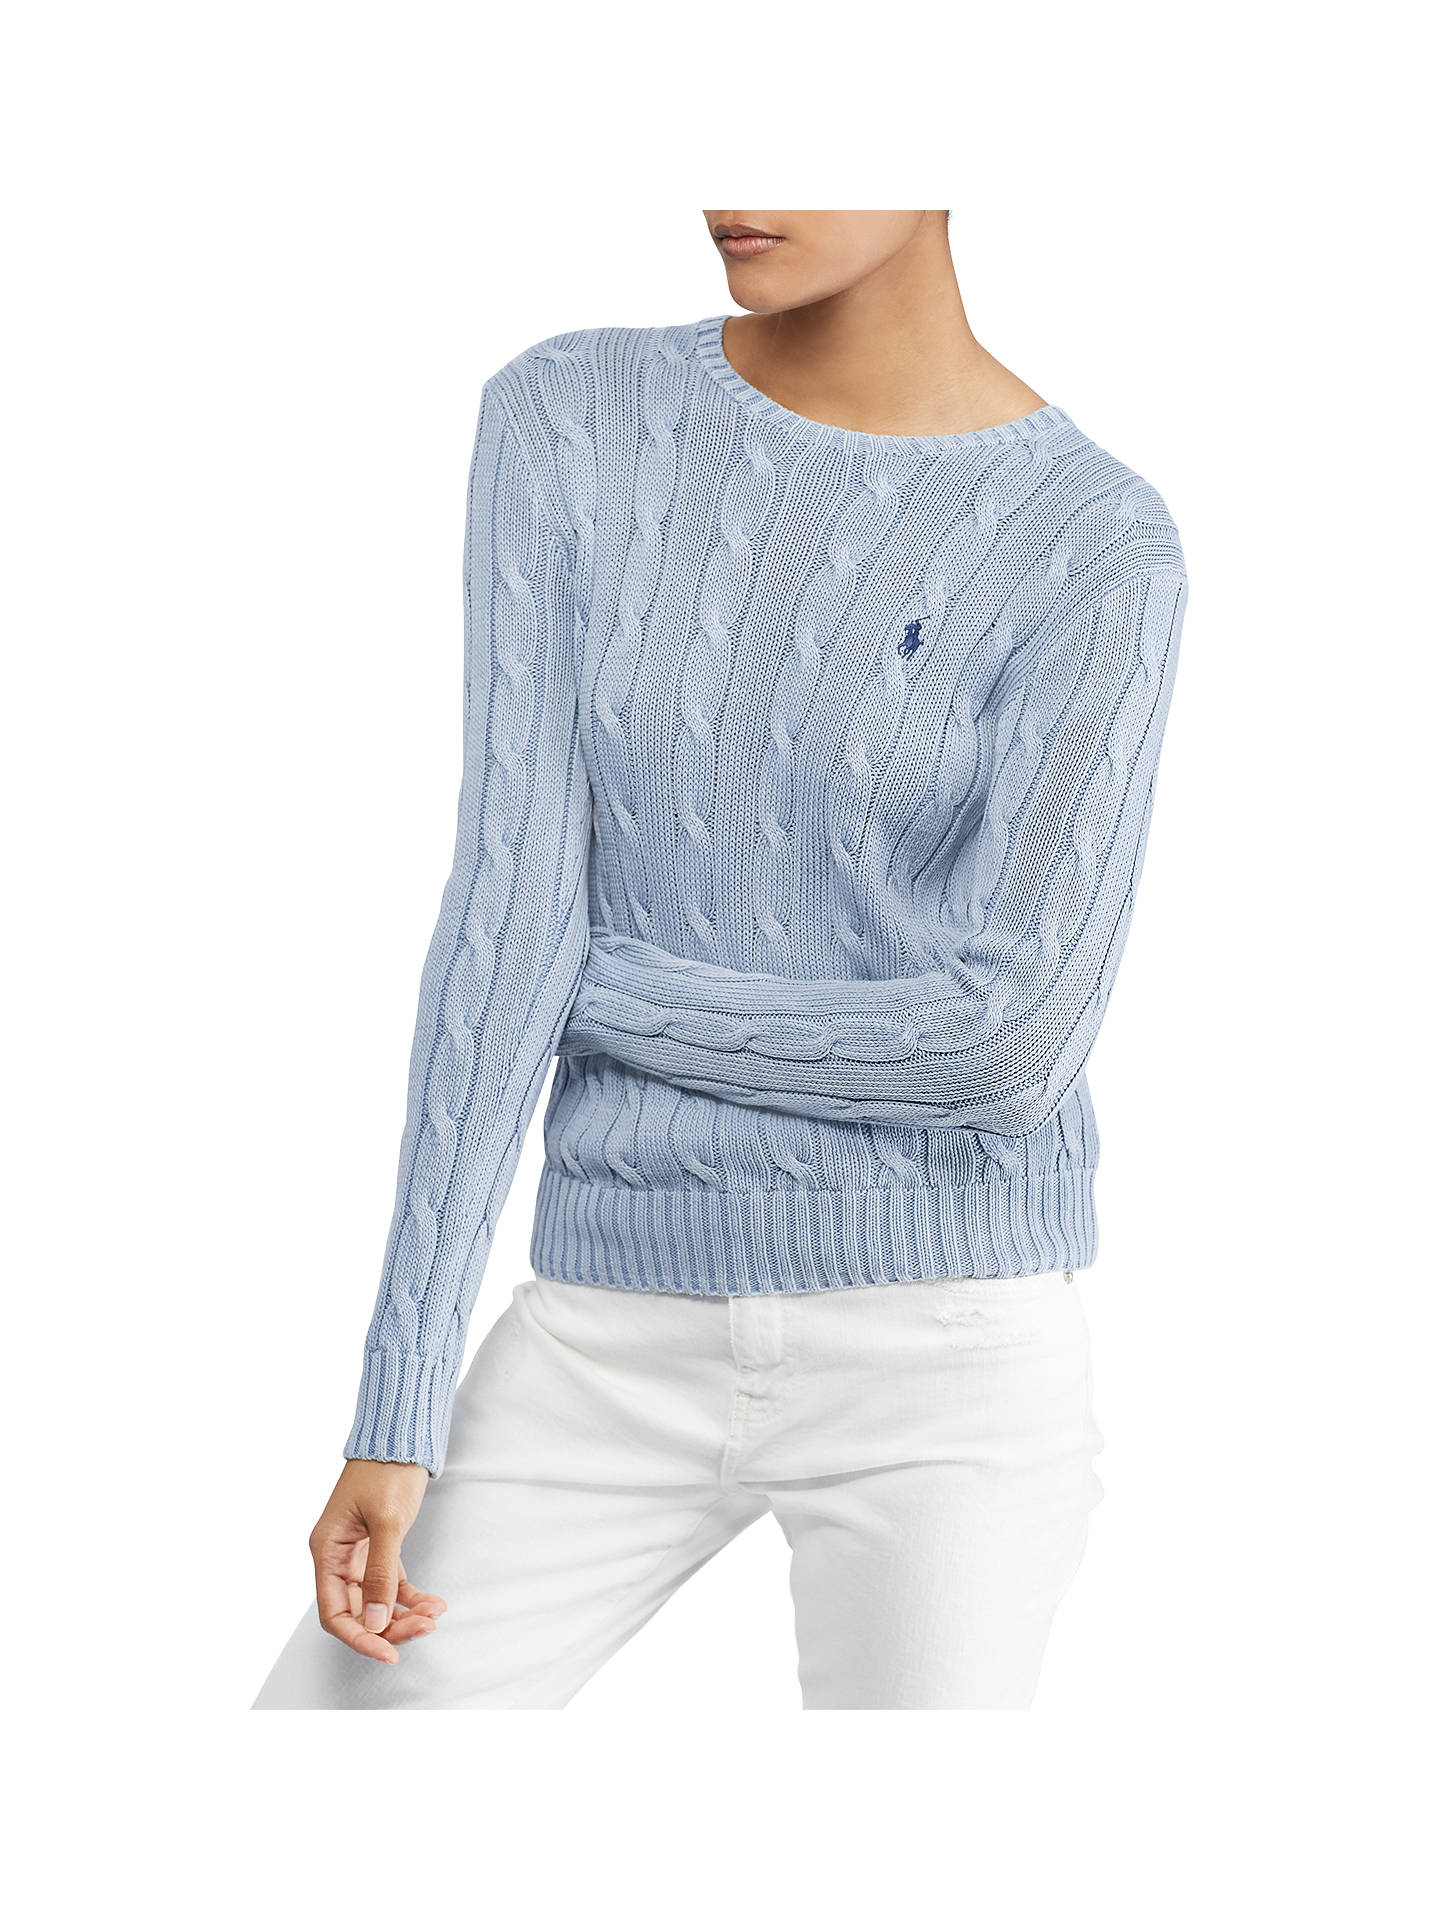 BuyPolo Ralph Lauren Julianna Cable Knit Cotton Jumper, Chambray, XS Online at johnlewis.com